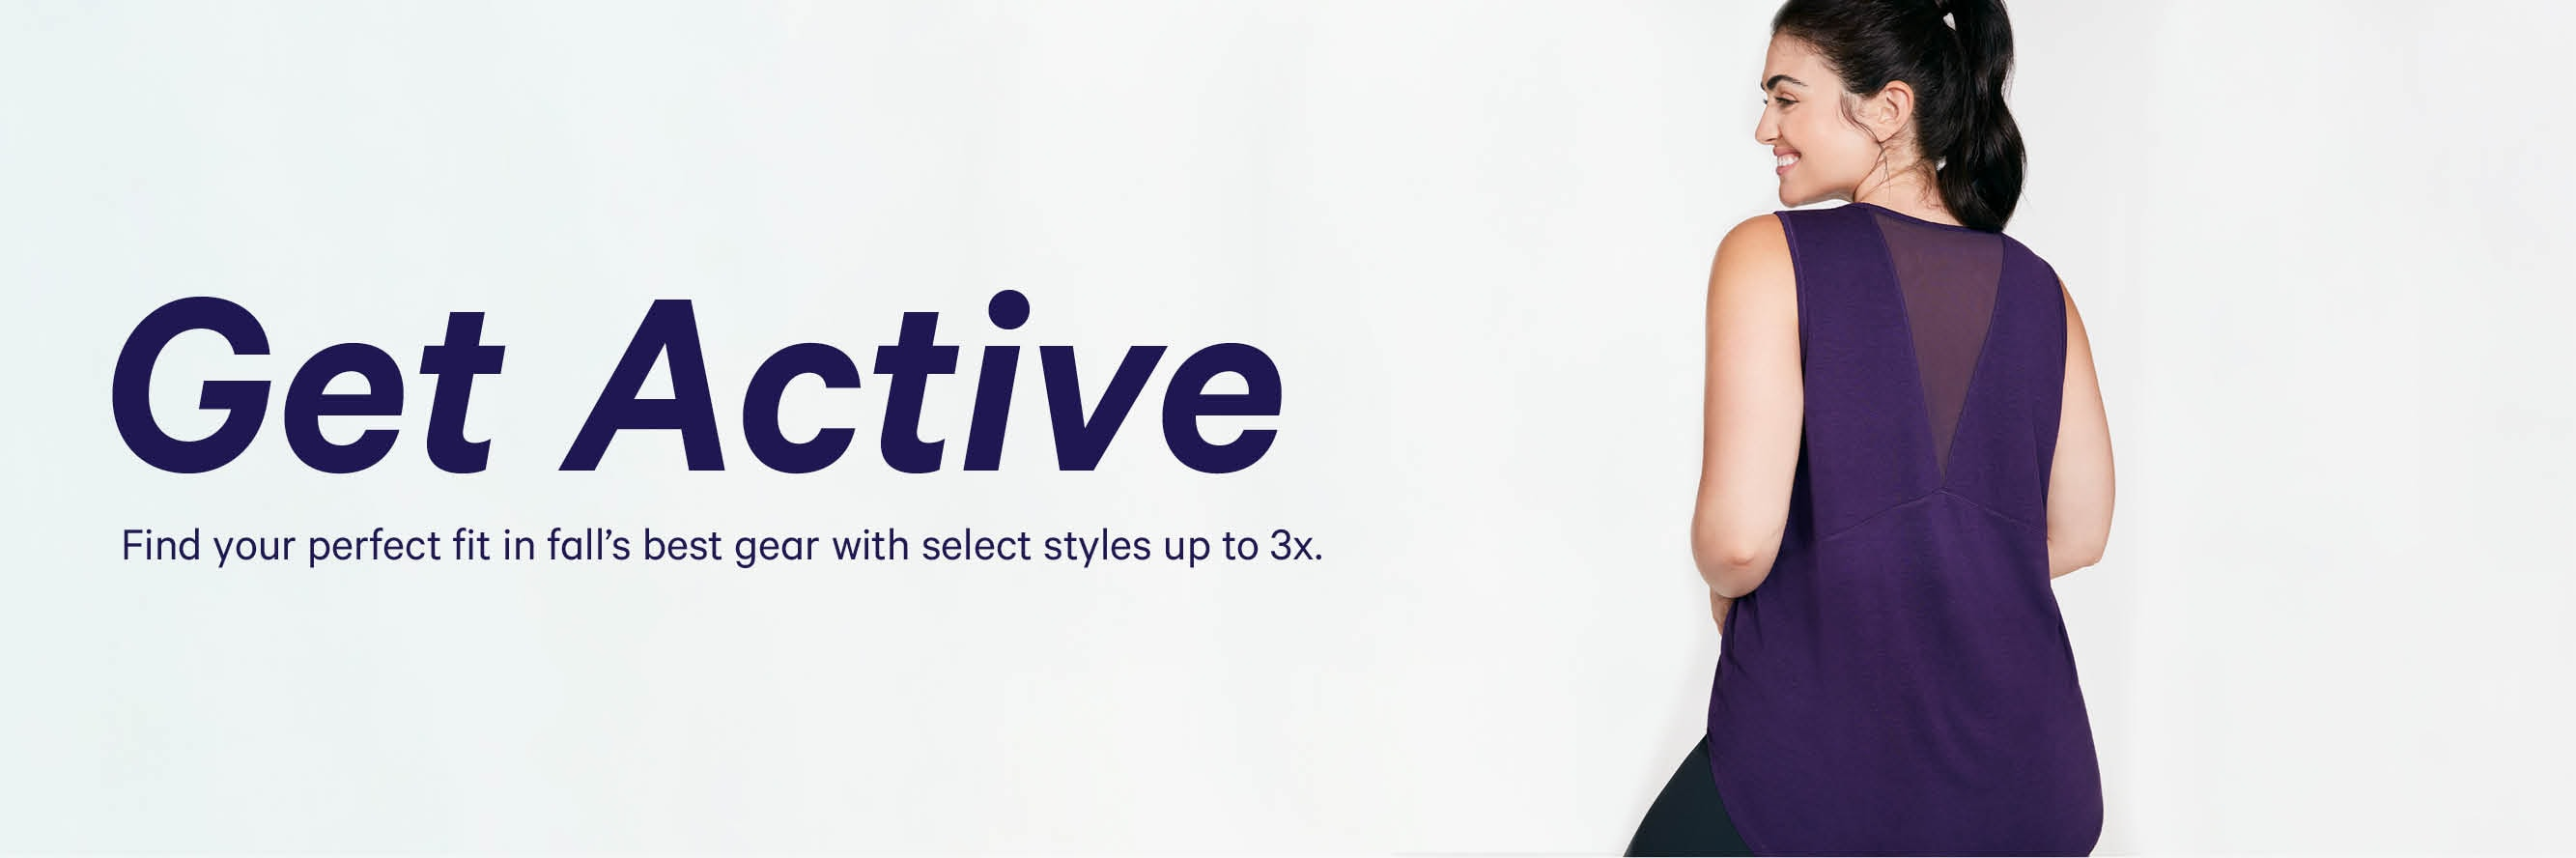 Best fit active gear from styles up to 3x